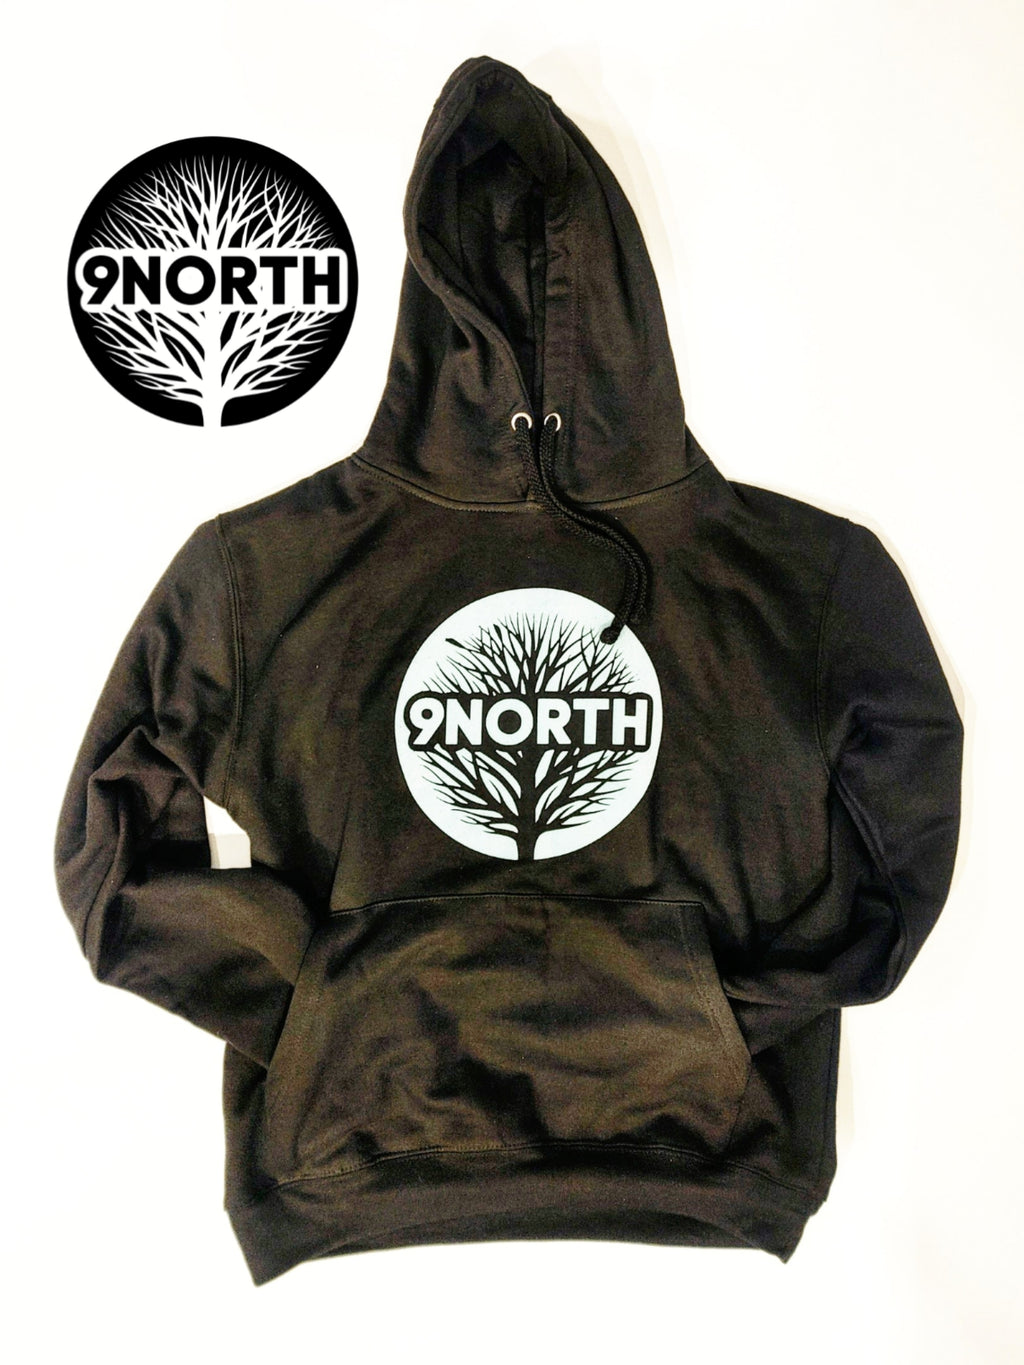 SILVER BACK hoodie by 9ThandNorth - Dakoro Art